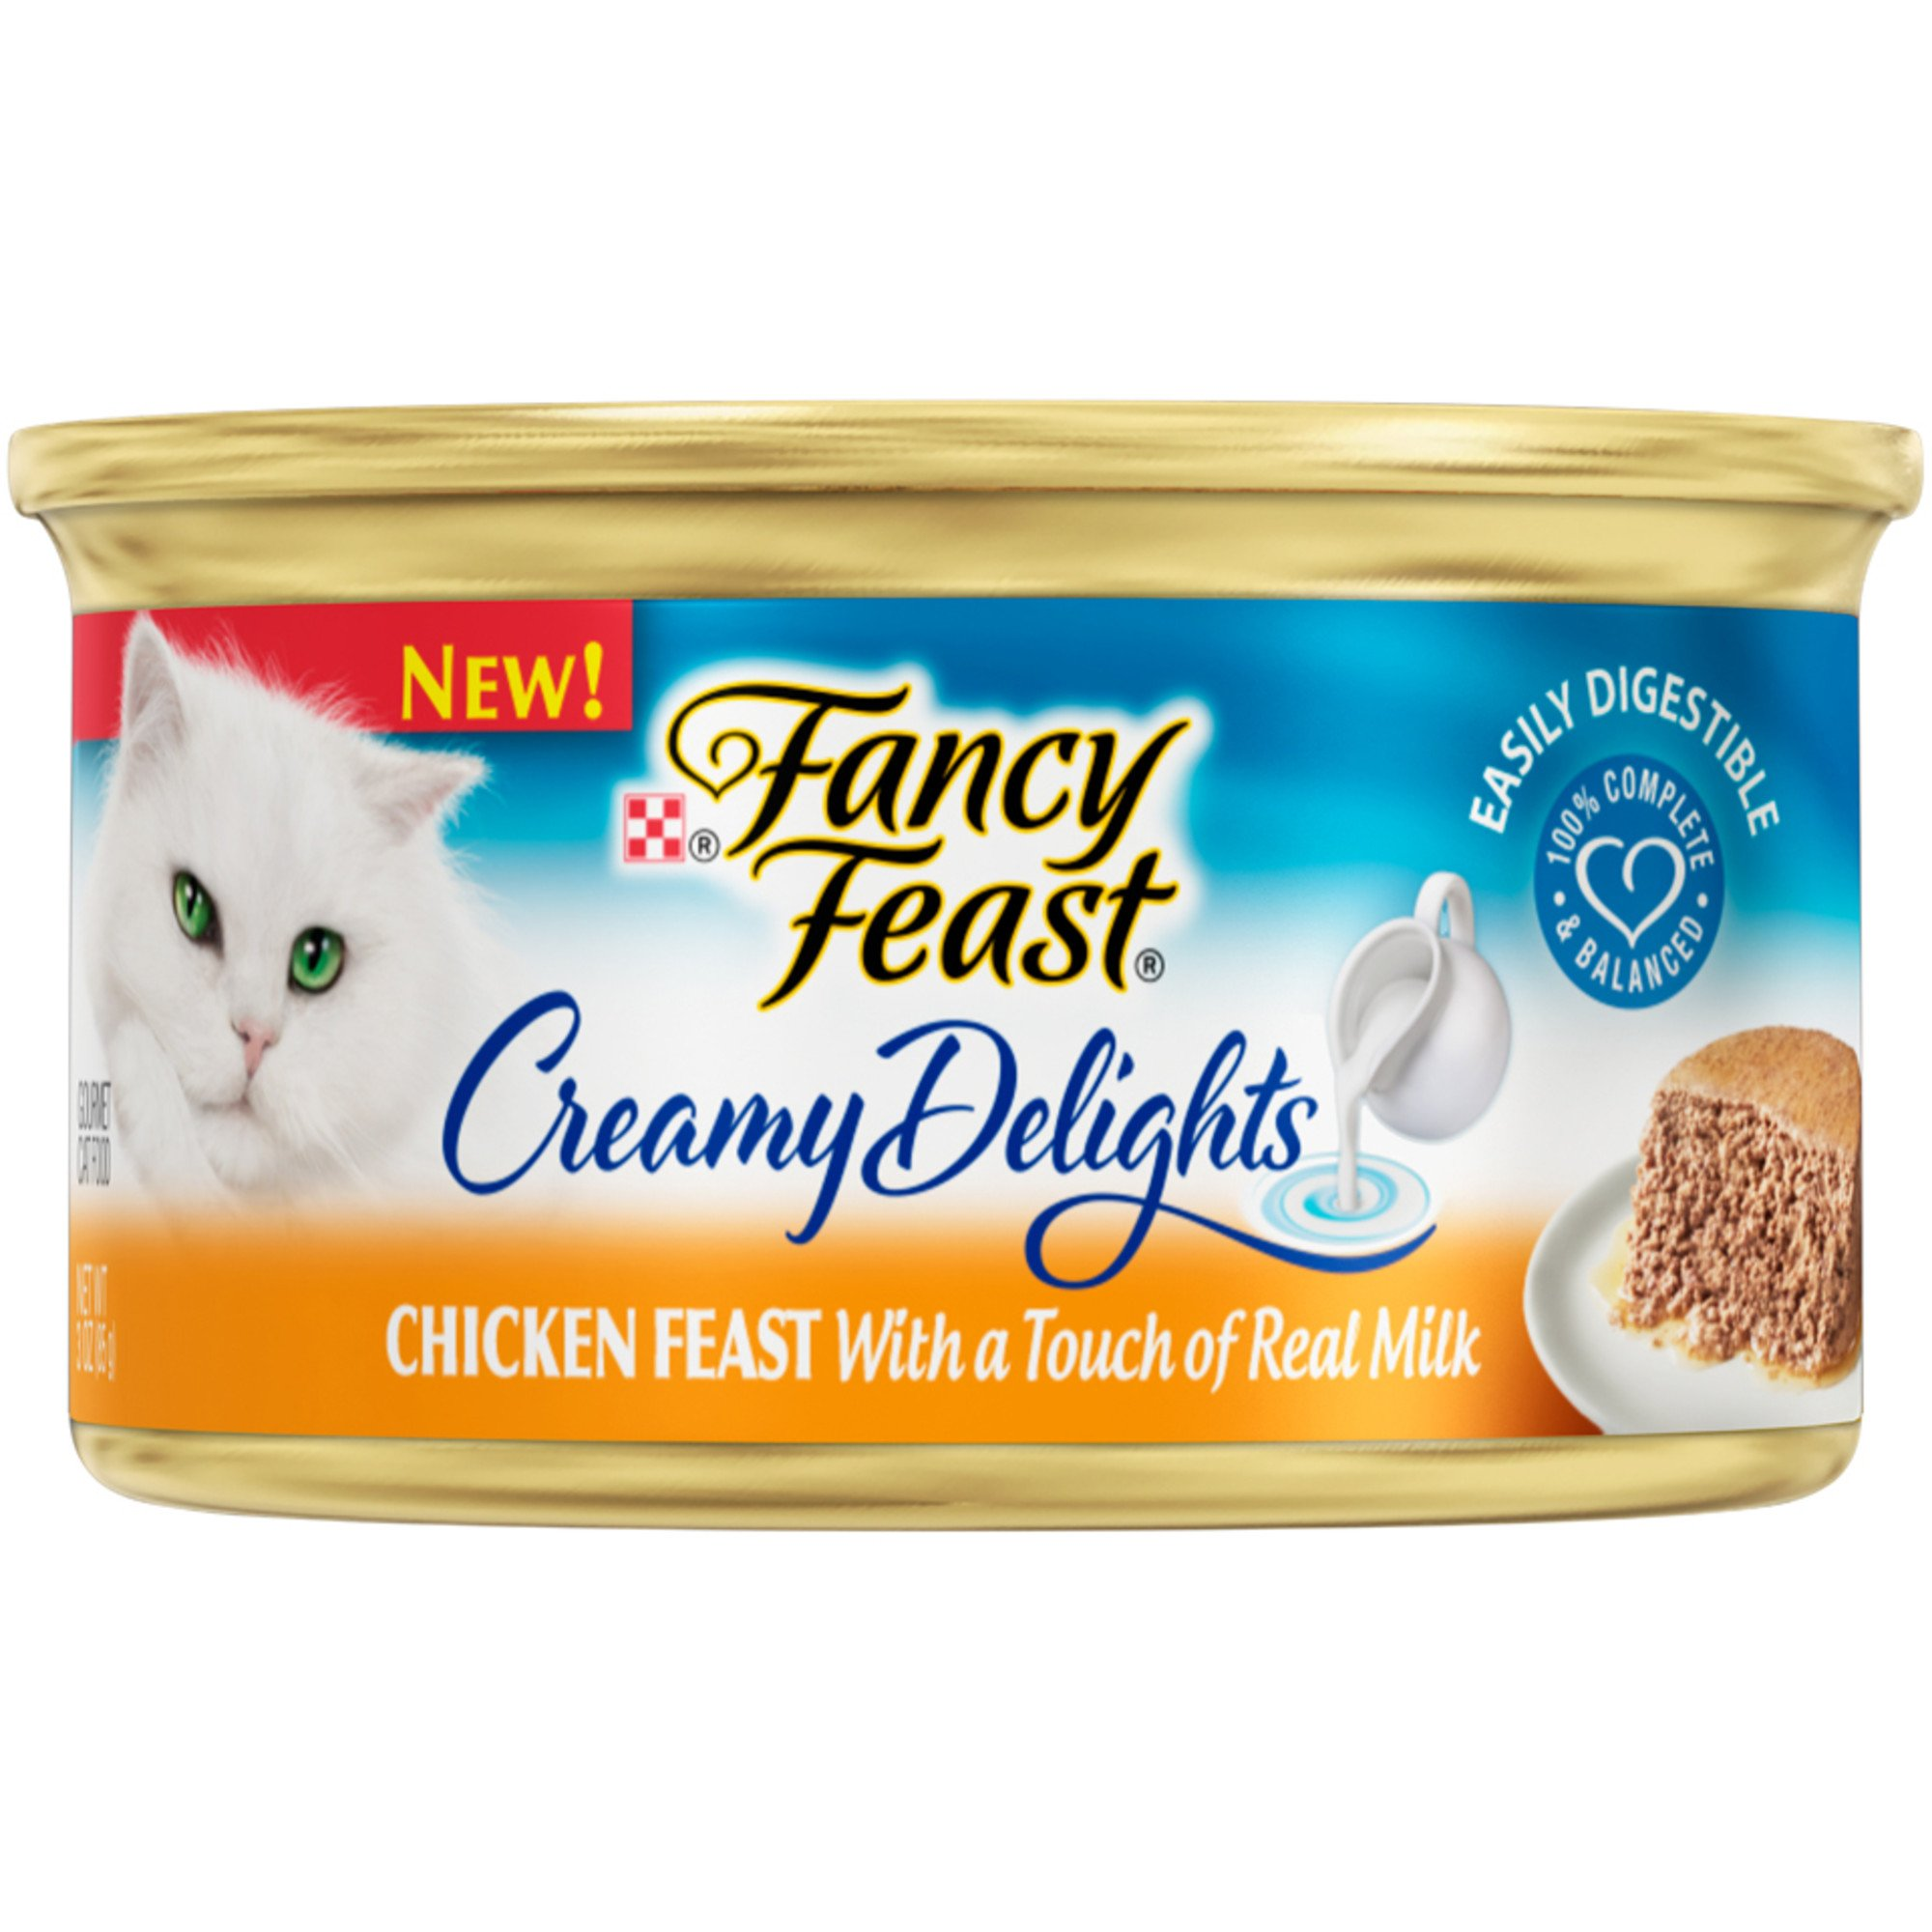 Purina Fancy Feast Creamy Delights Chicken Feast With A